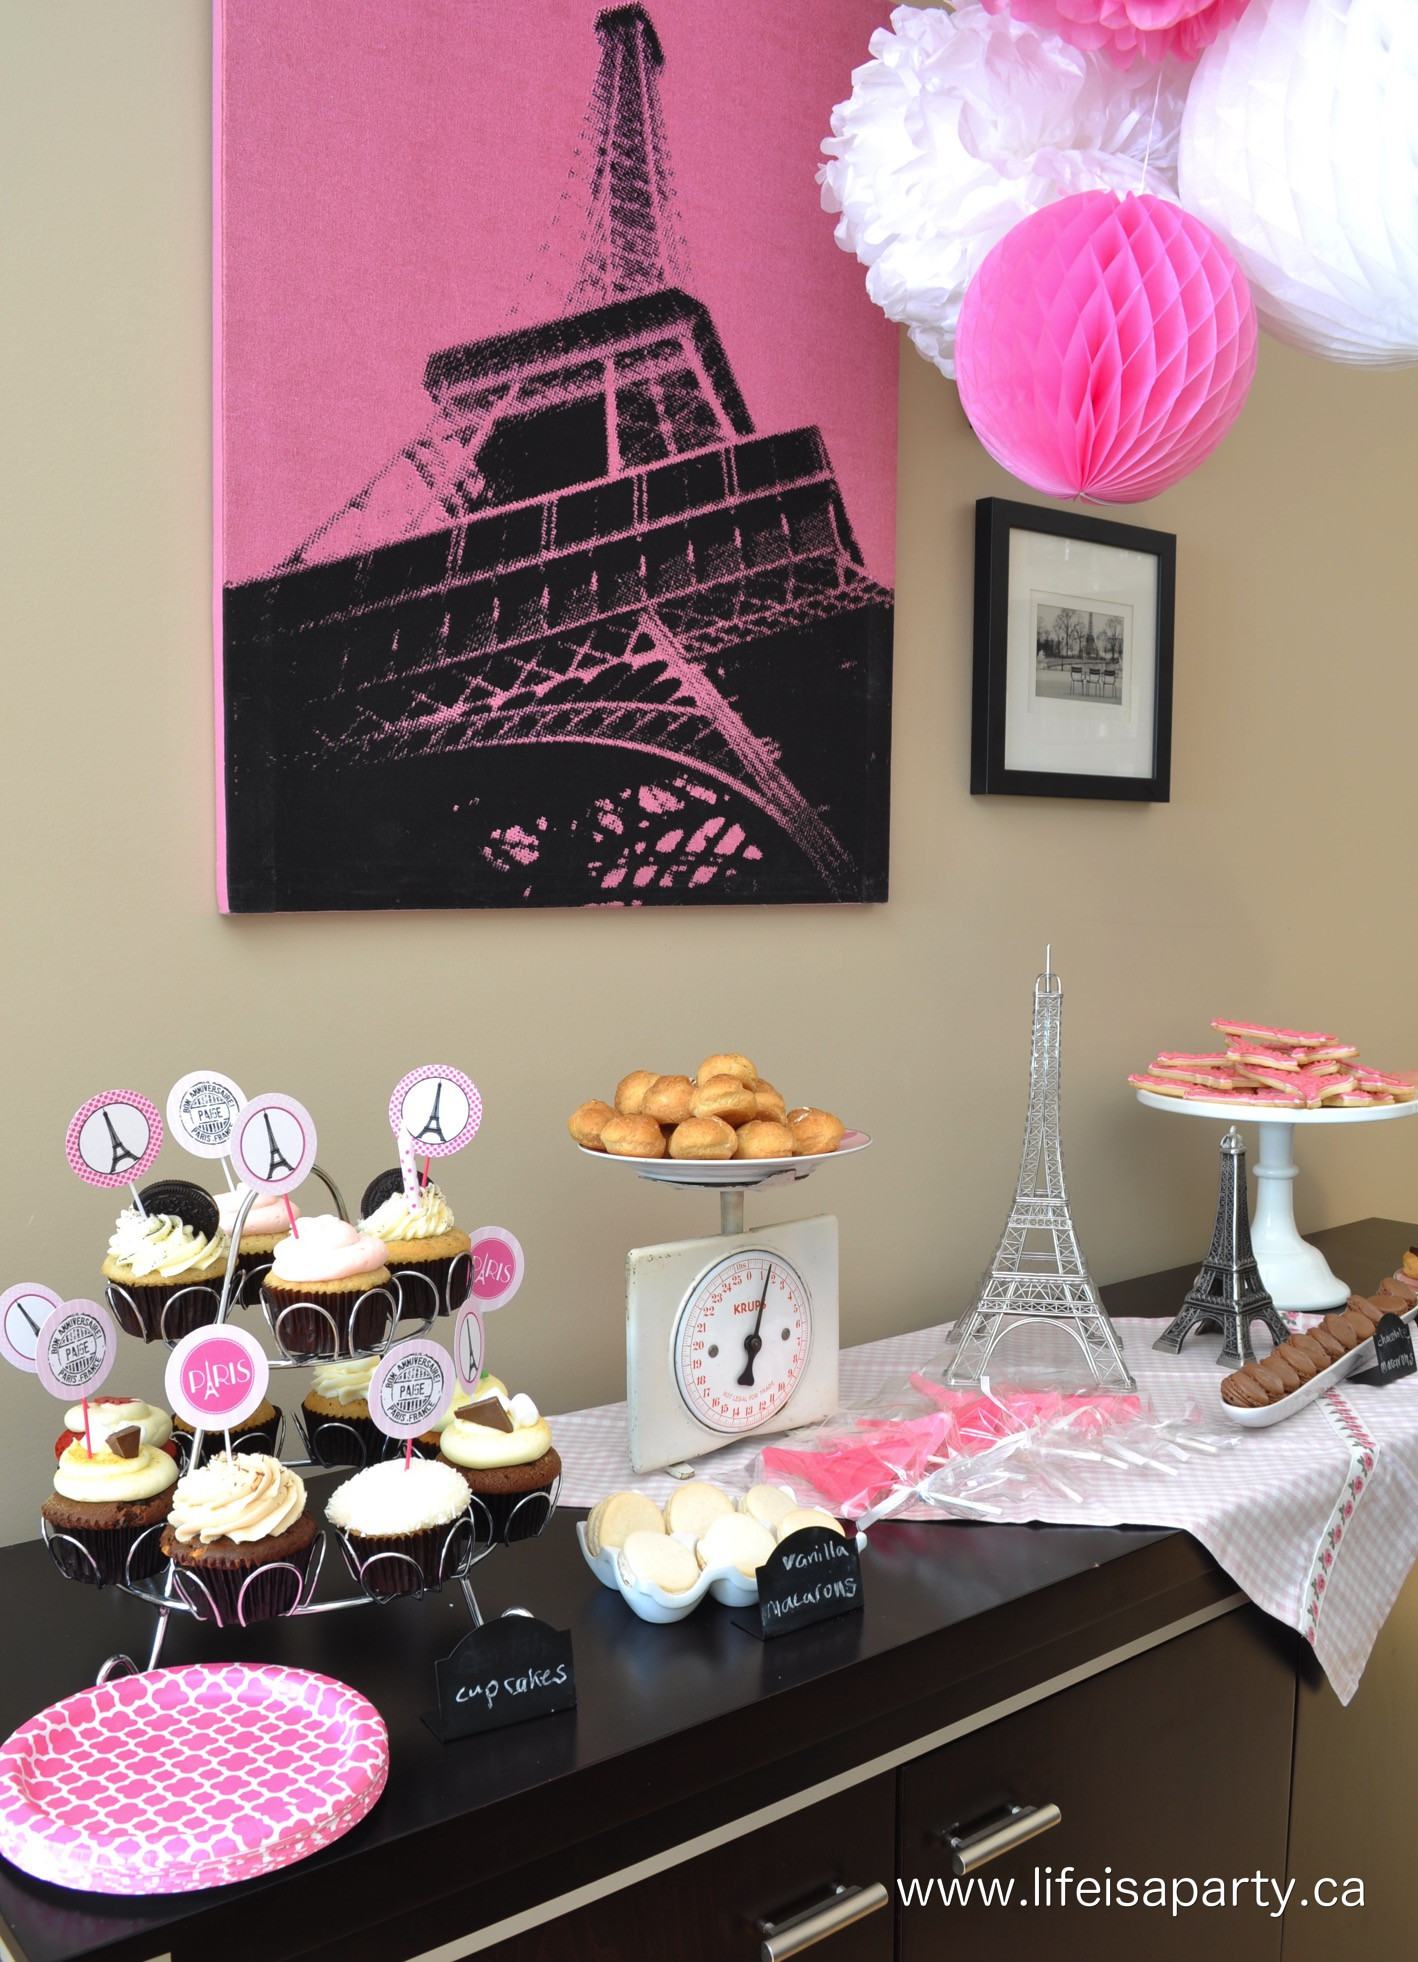 Best ideas about Paris Birthday Party . Save or Pin Paris Birthday Party Part Two The Food Life is a Party Now.